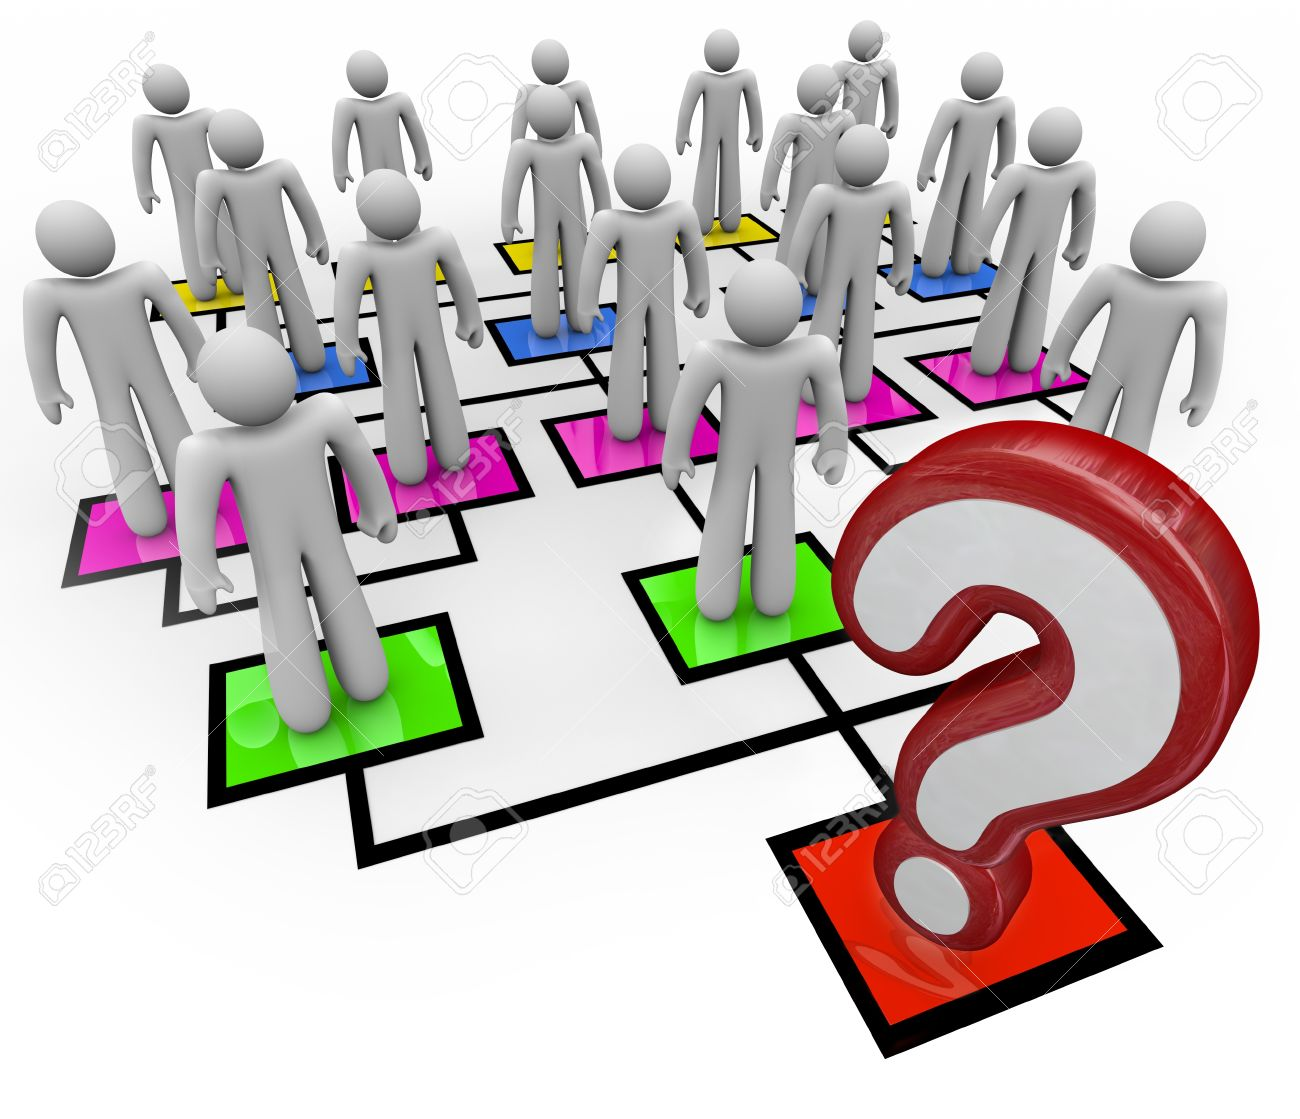 an organization wonders what to do in a lack of leadership an organization wonders what to do in a lack of leadership a question mark where